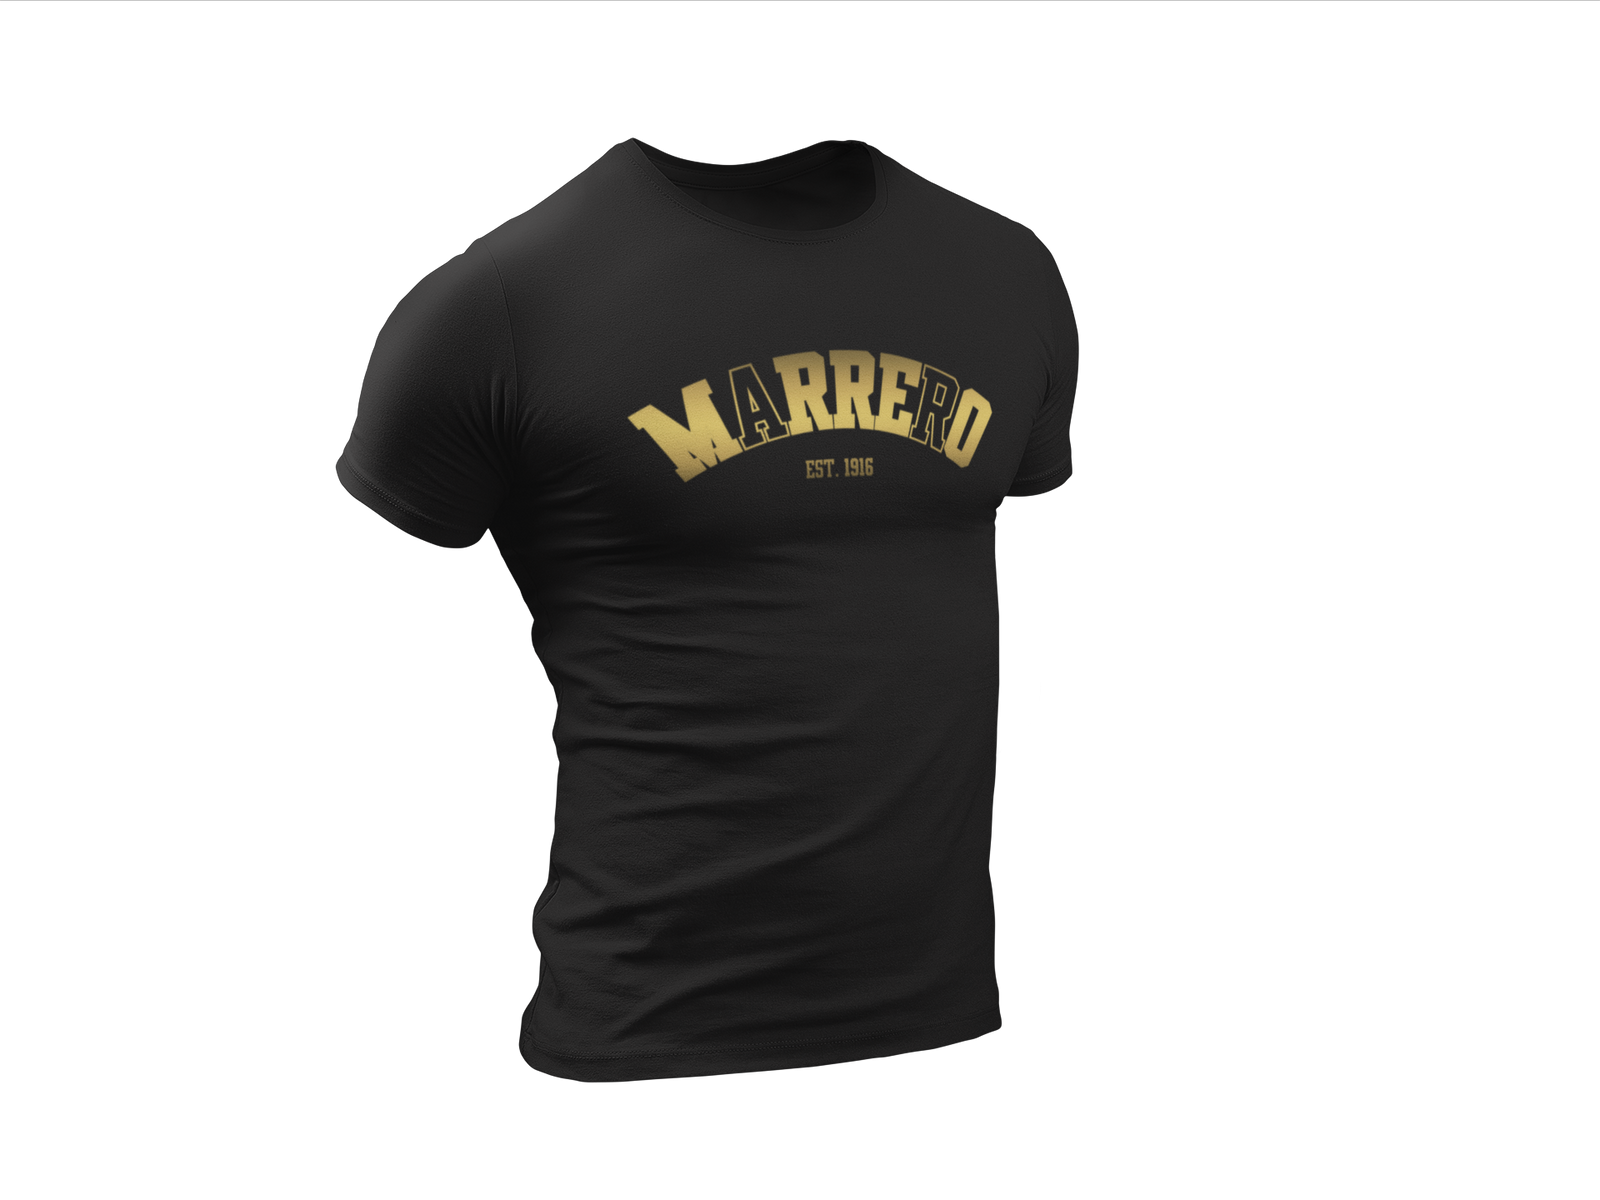 Load image into Gallery viewer, Hood Love Marrero Black & Gold Edition